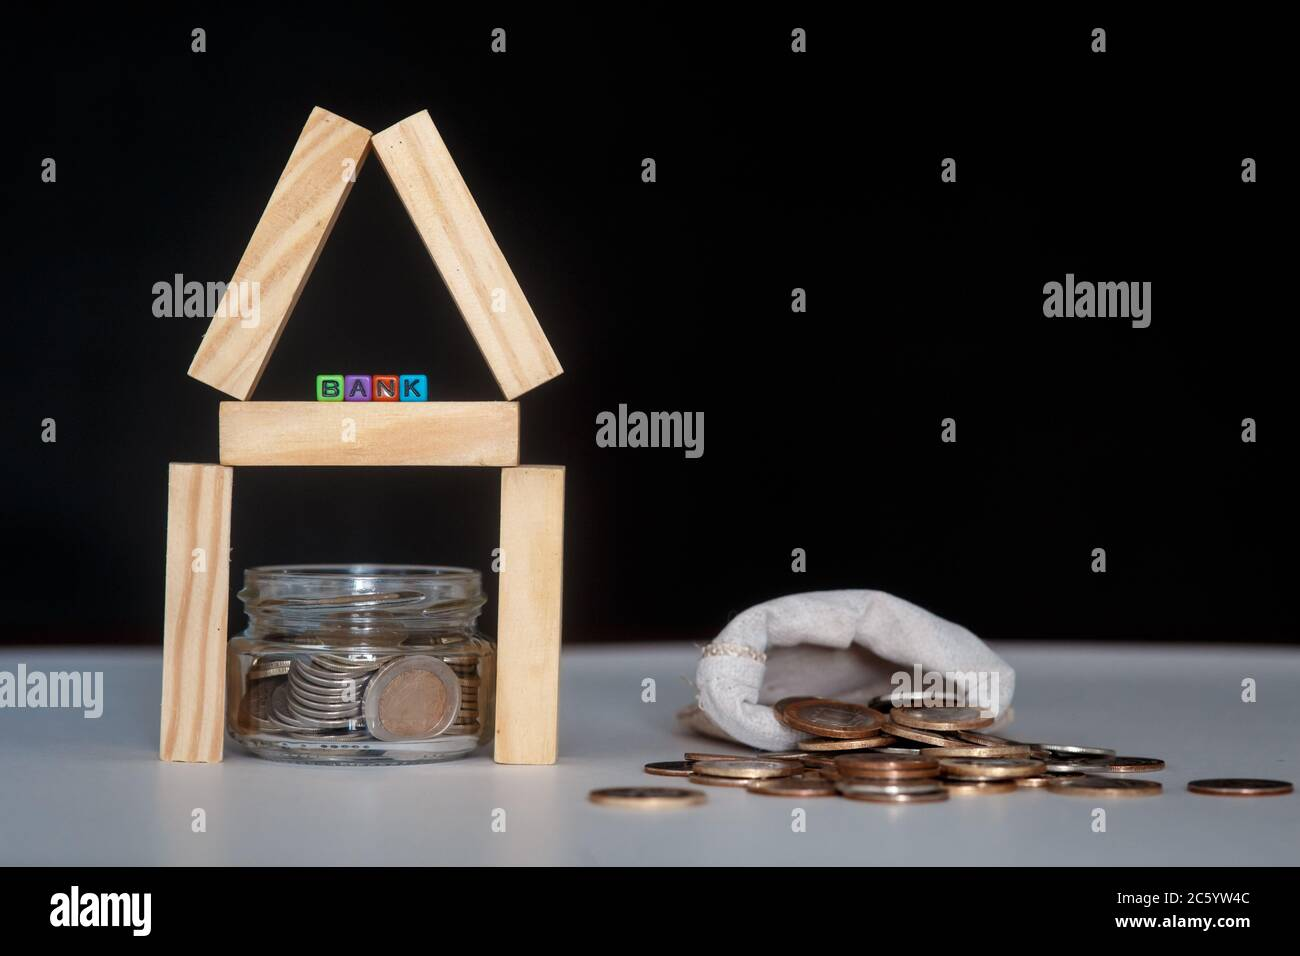 Glass bank with many world coins, house word or label on money jar and wooden home geometric blocks over table Stock Photo